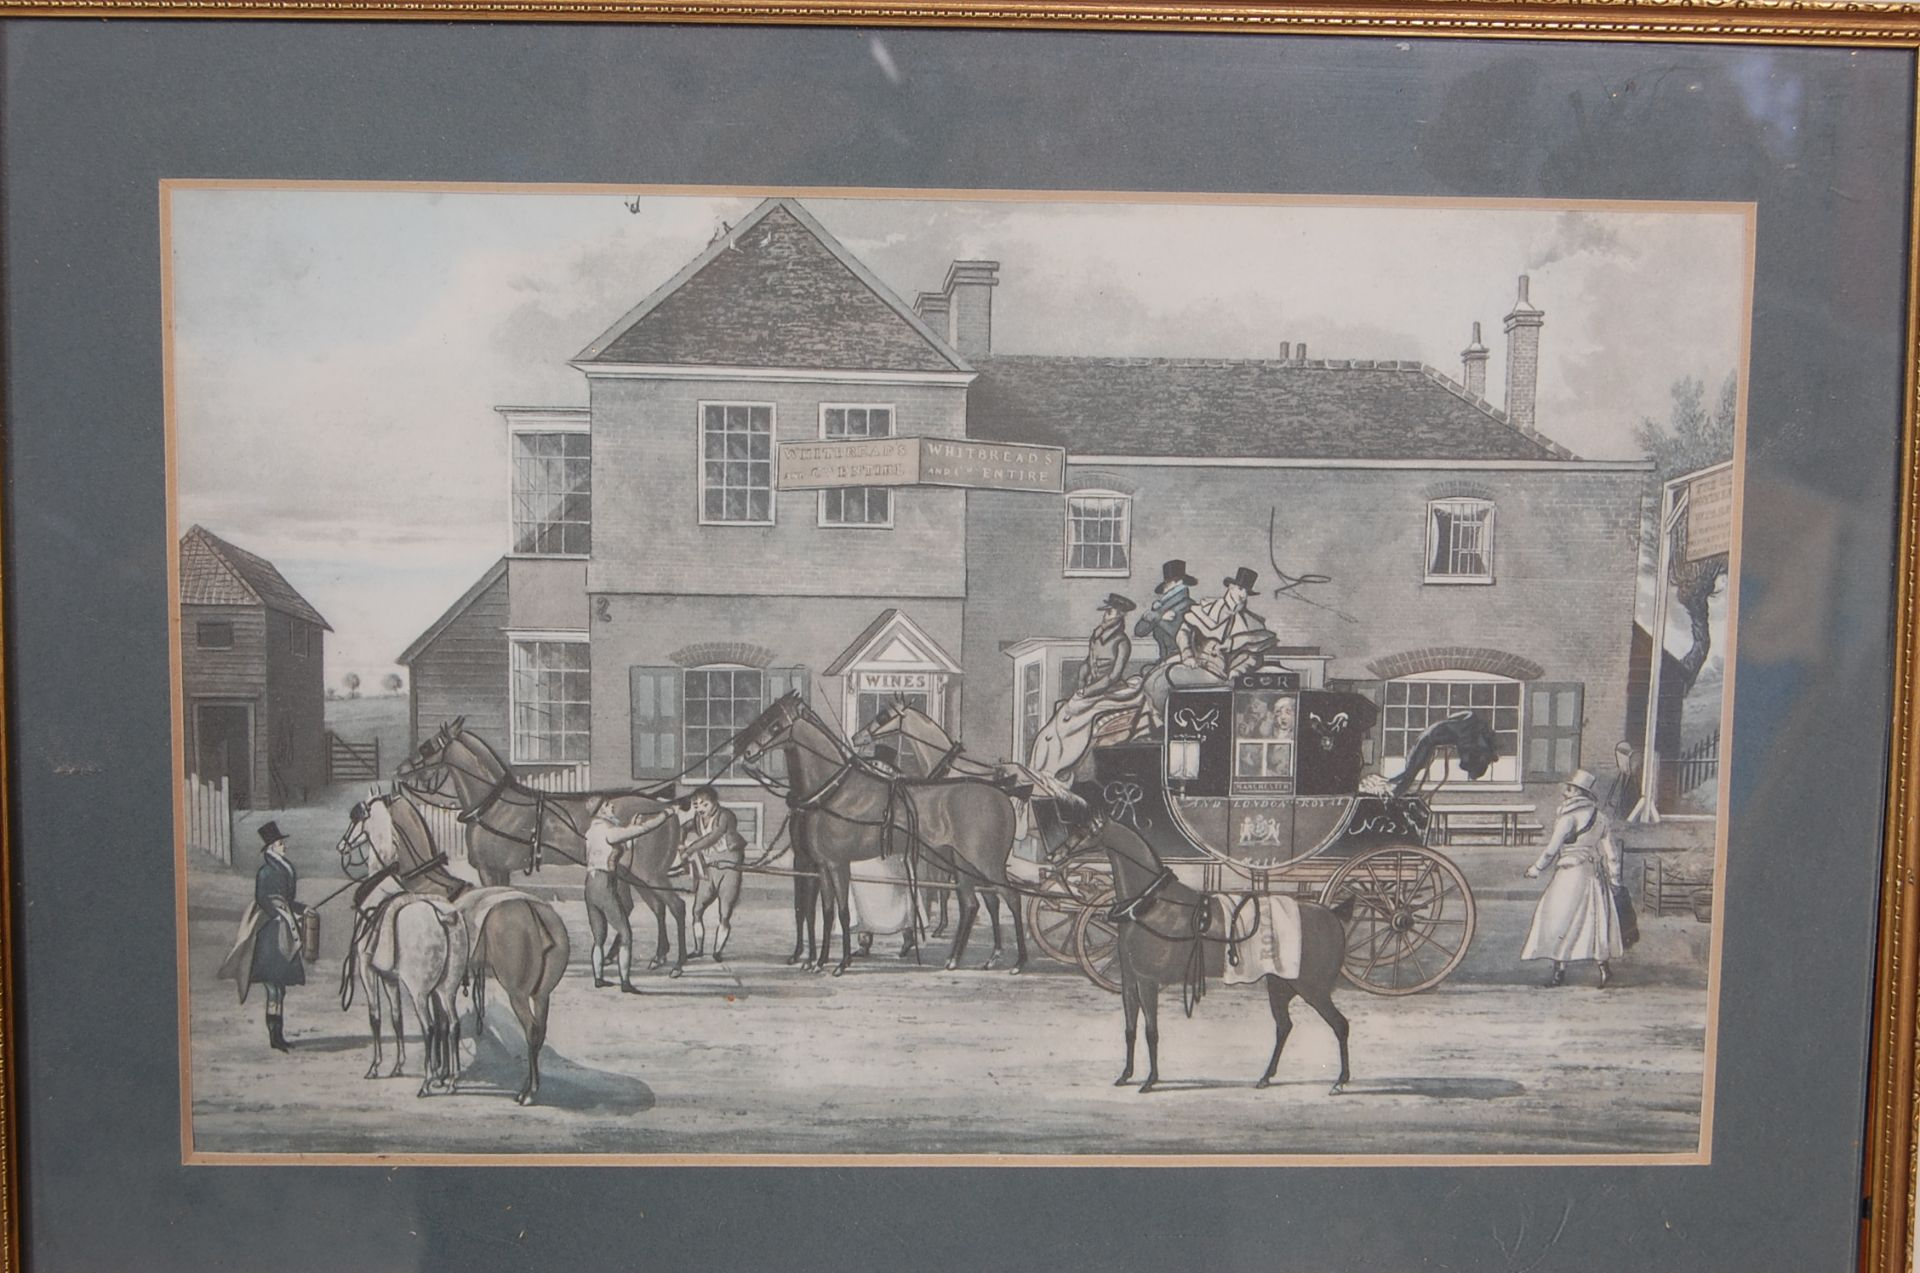 A GROUP OF SEVEN ROYAL MAIL LITHOGRAPH PRINTS DEPICTING 19TH CENTURY ROAYL MAIL COACHES - Image 5 of 13